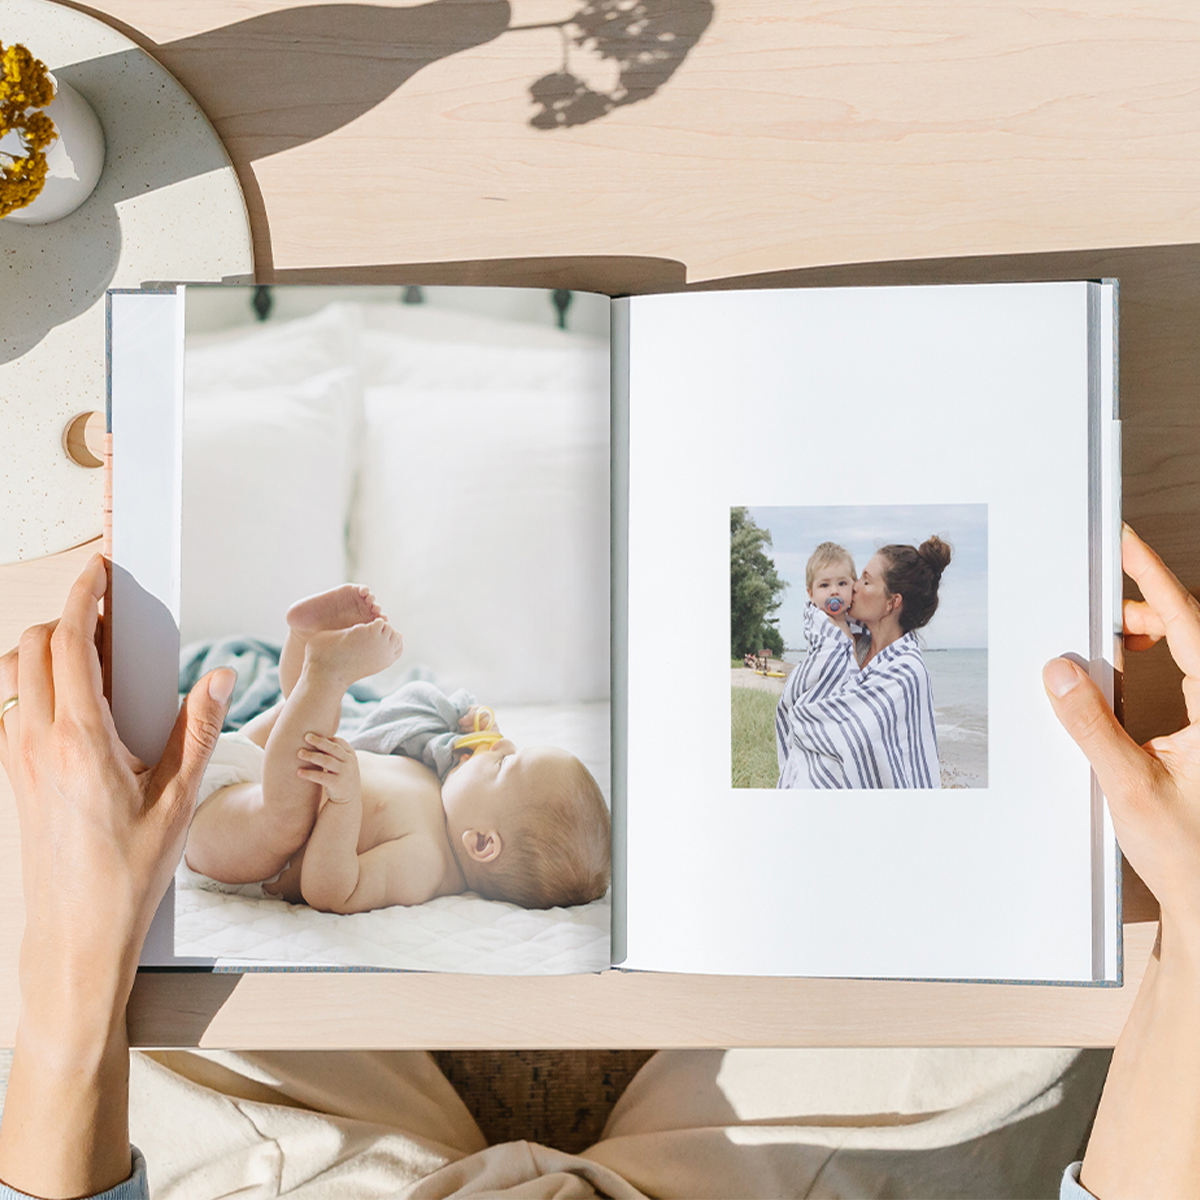 Interior of hardcover photo books showing two different layouts featuring baby photos